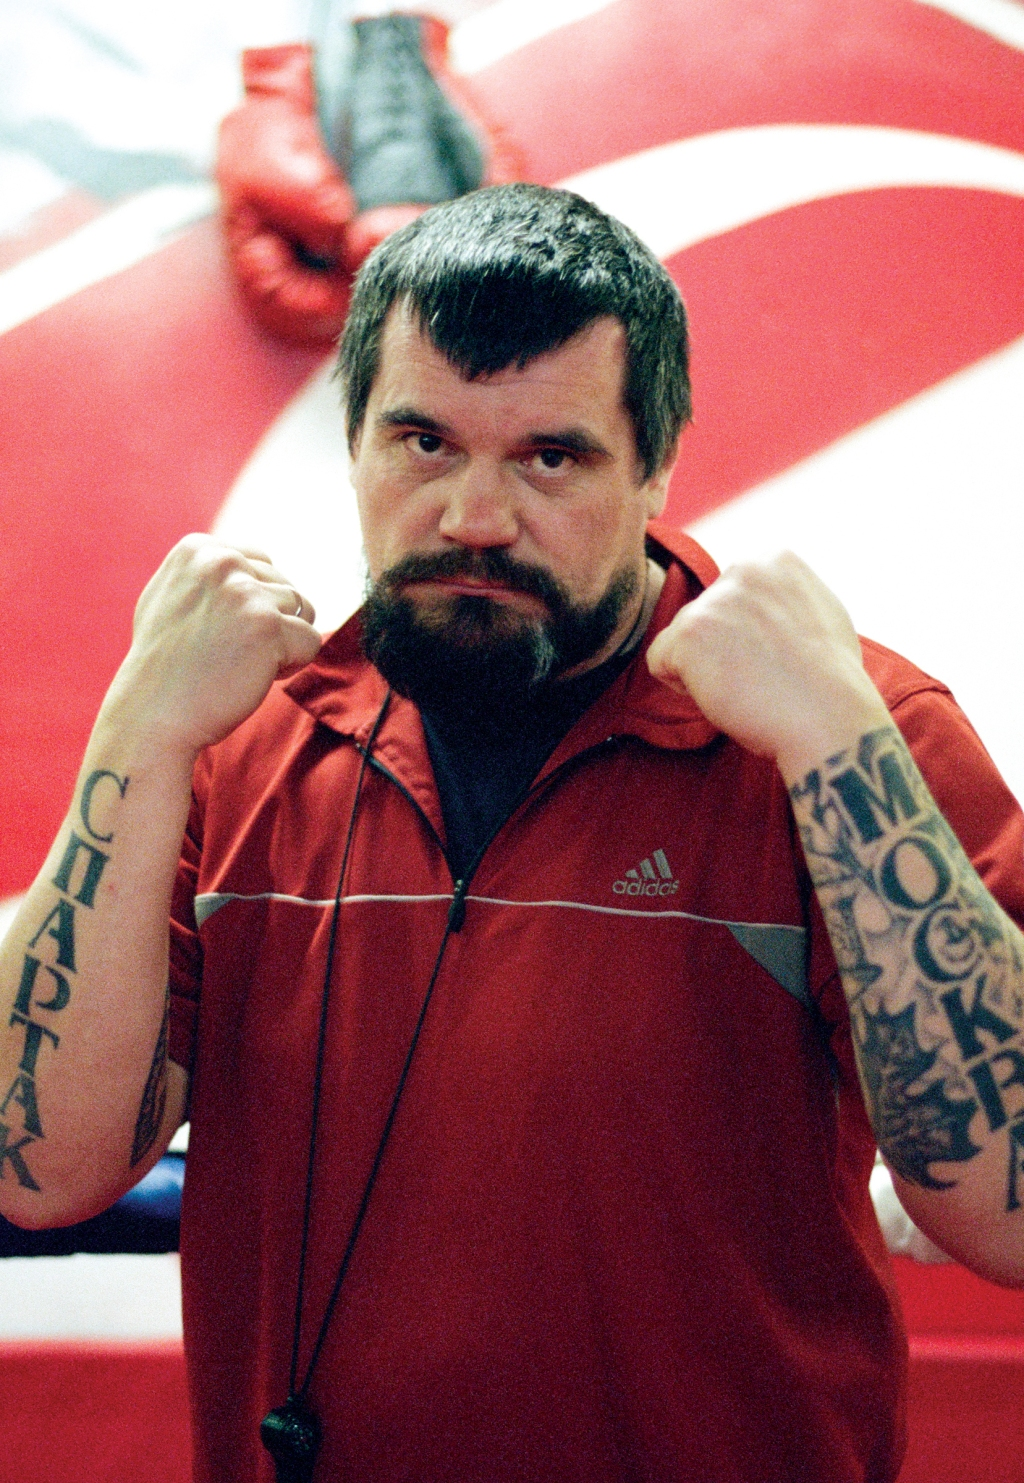 """It says Spartak on his arm,"" says Boogie, referring to the football club. ""That's a boxing coach from one of the boxing gyms."""